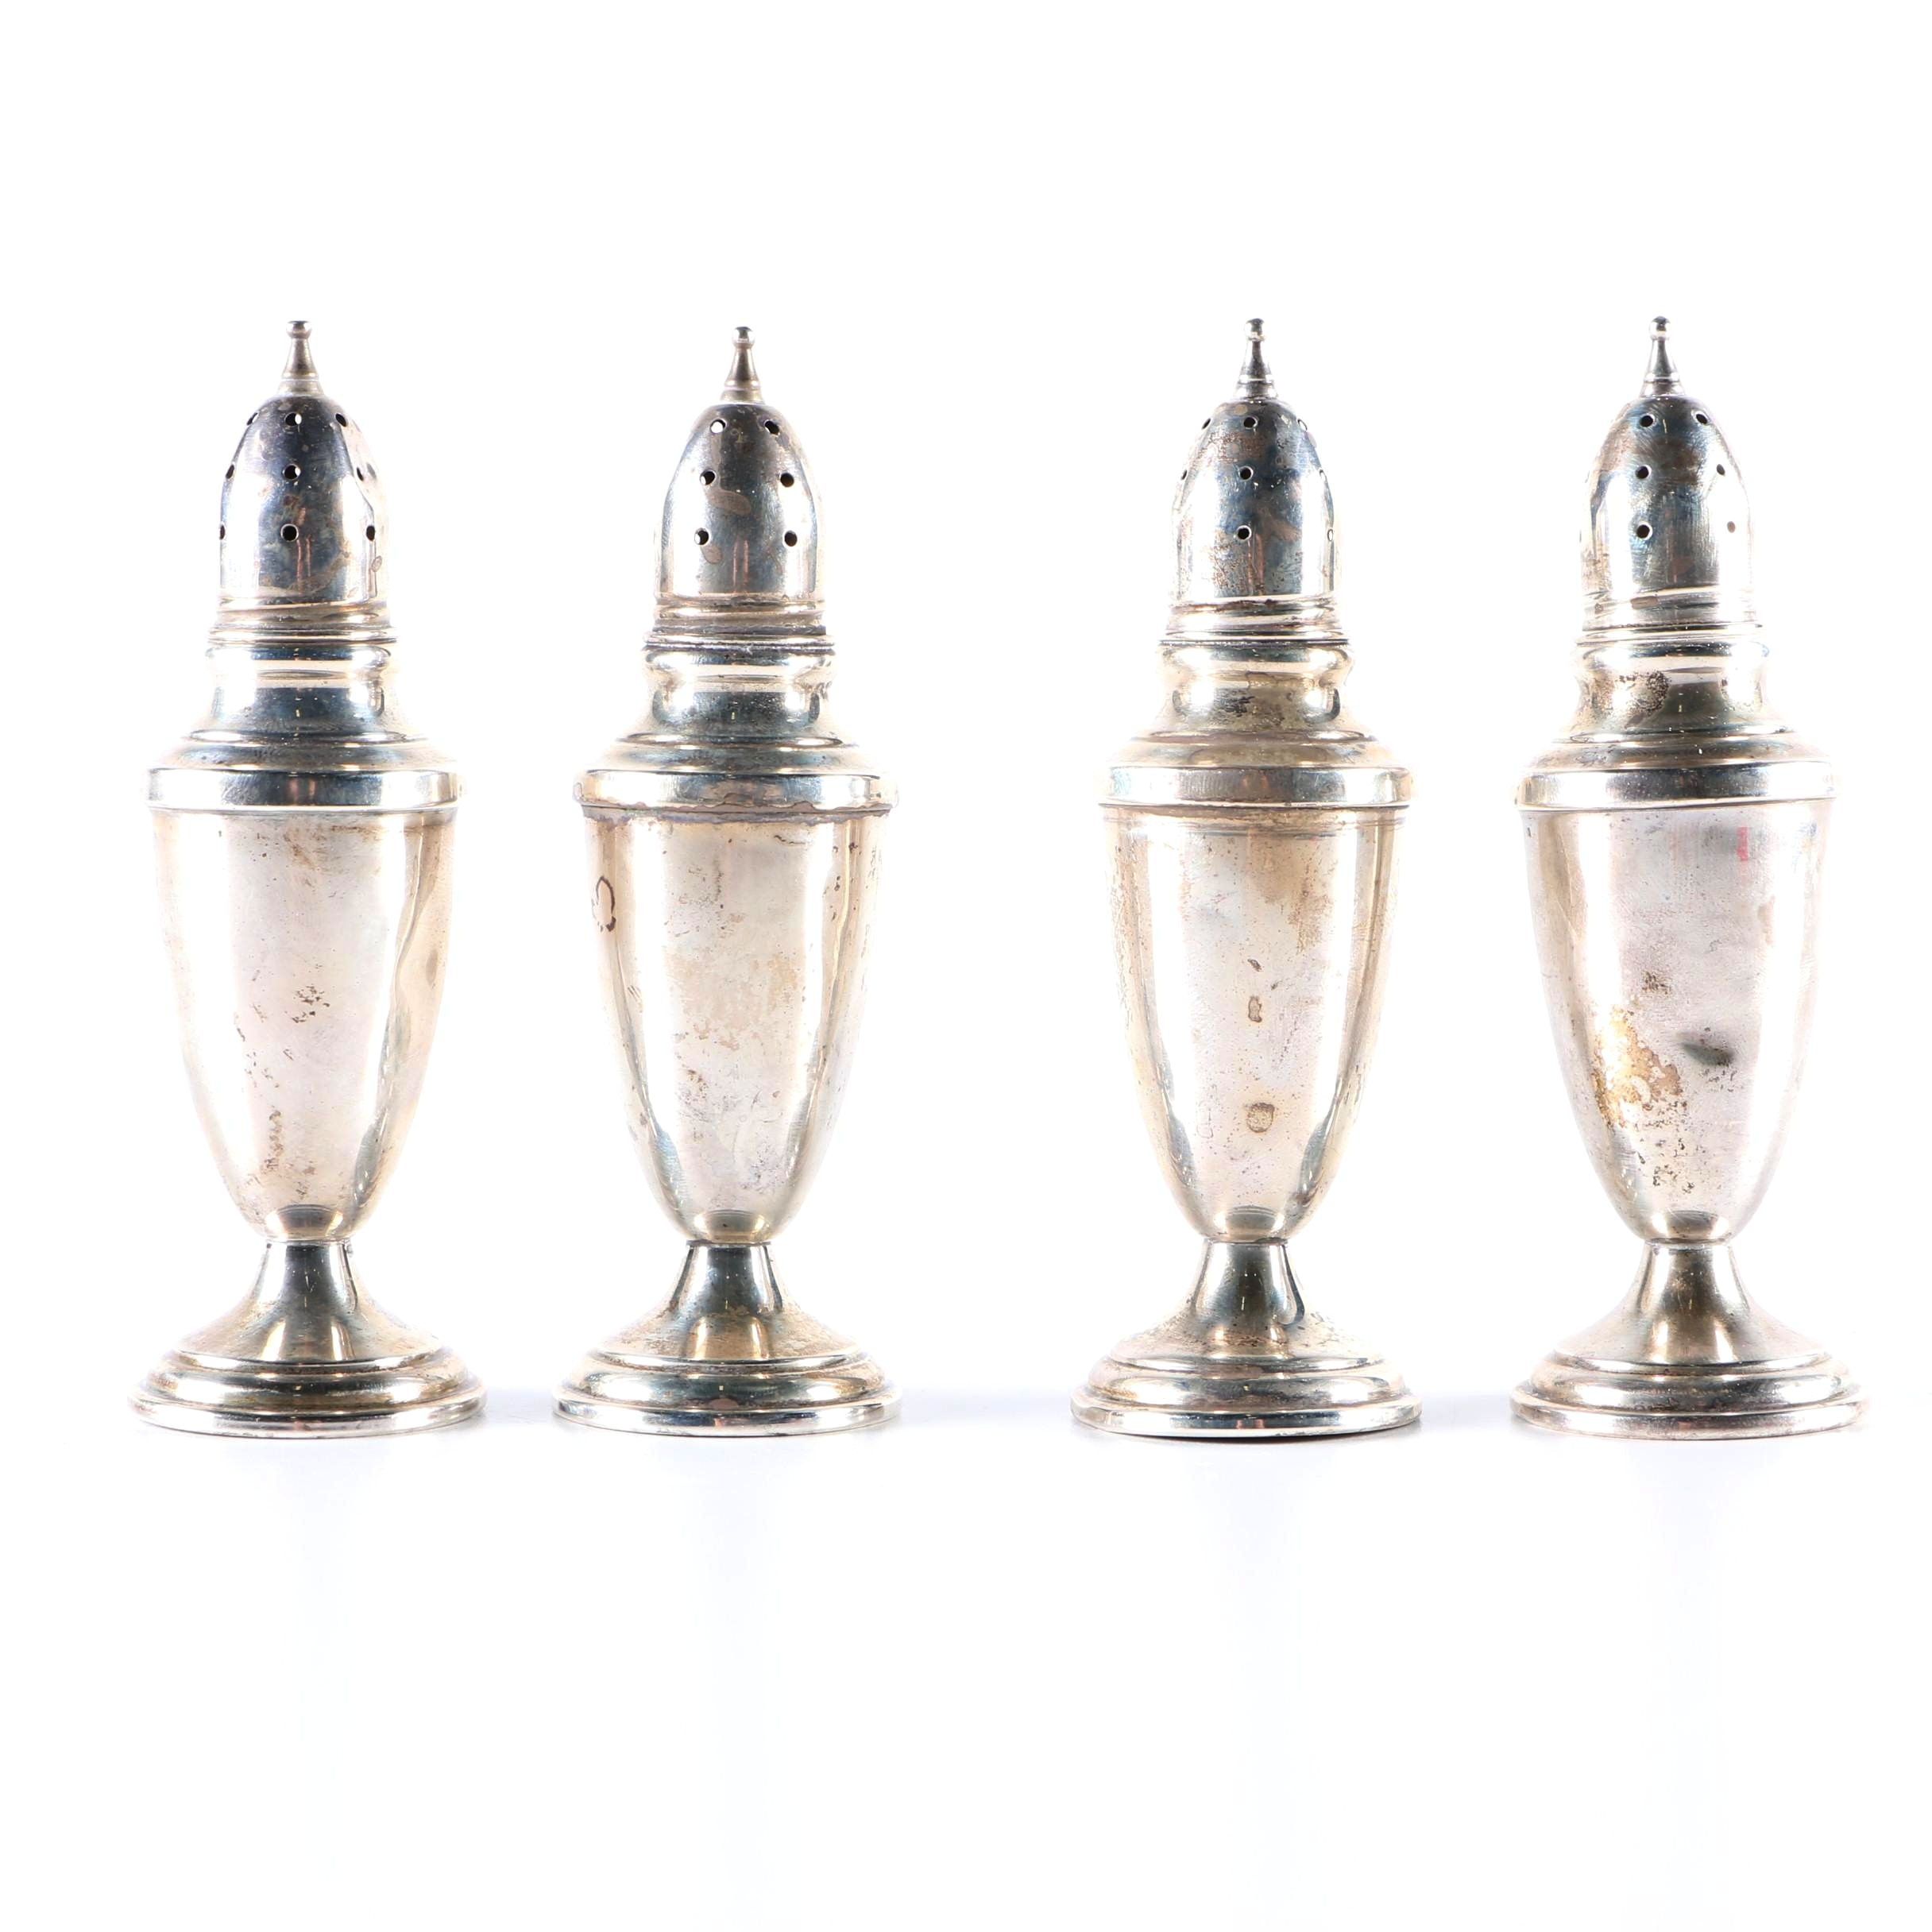 Four Sterling Silver Salt and Pepper Shakers from Towle